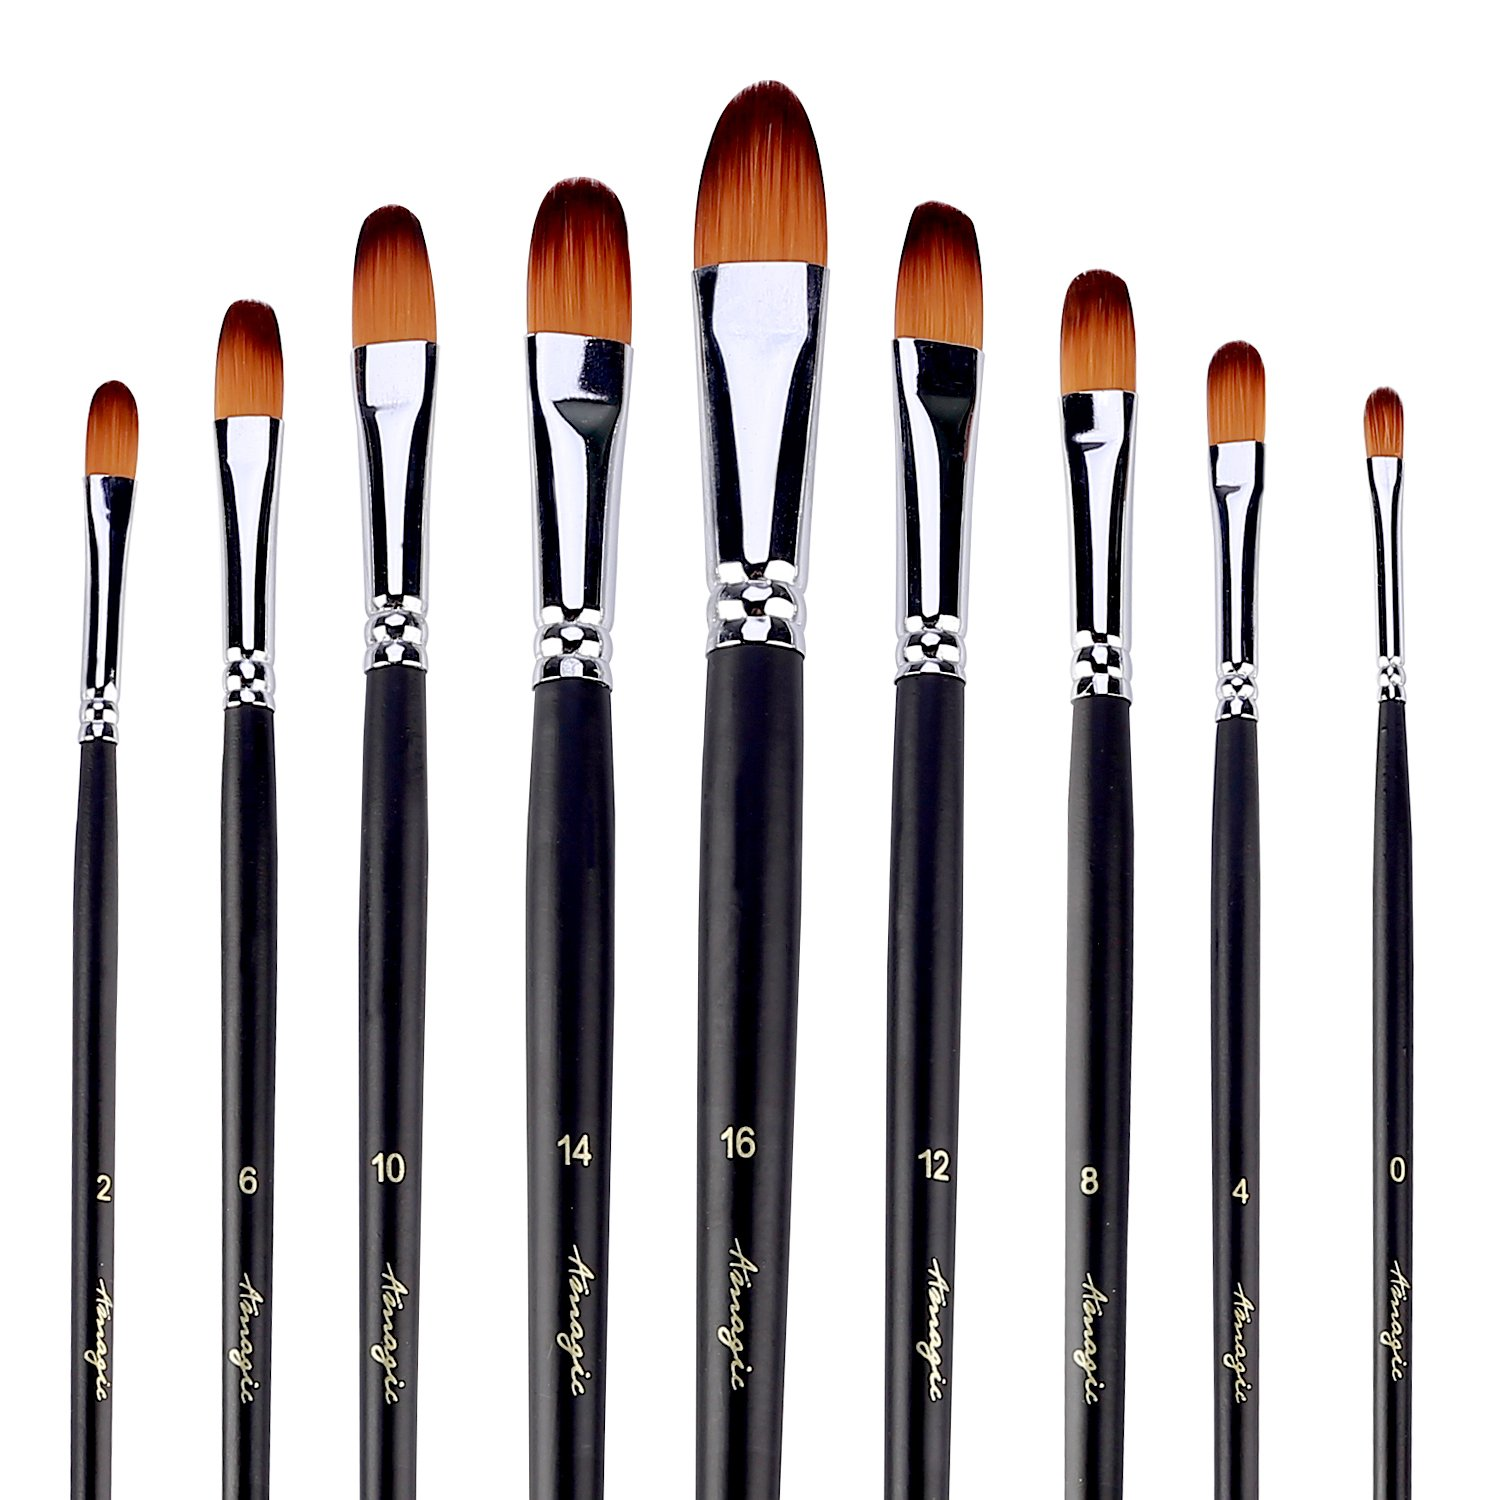 Filbert Brushes for Acrylic Oil Watercolor by Amagic 9 Pcs Artist Face and Body Professional Painting Kits with Synthetic Nylon Tips by Amagic